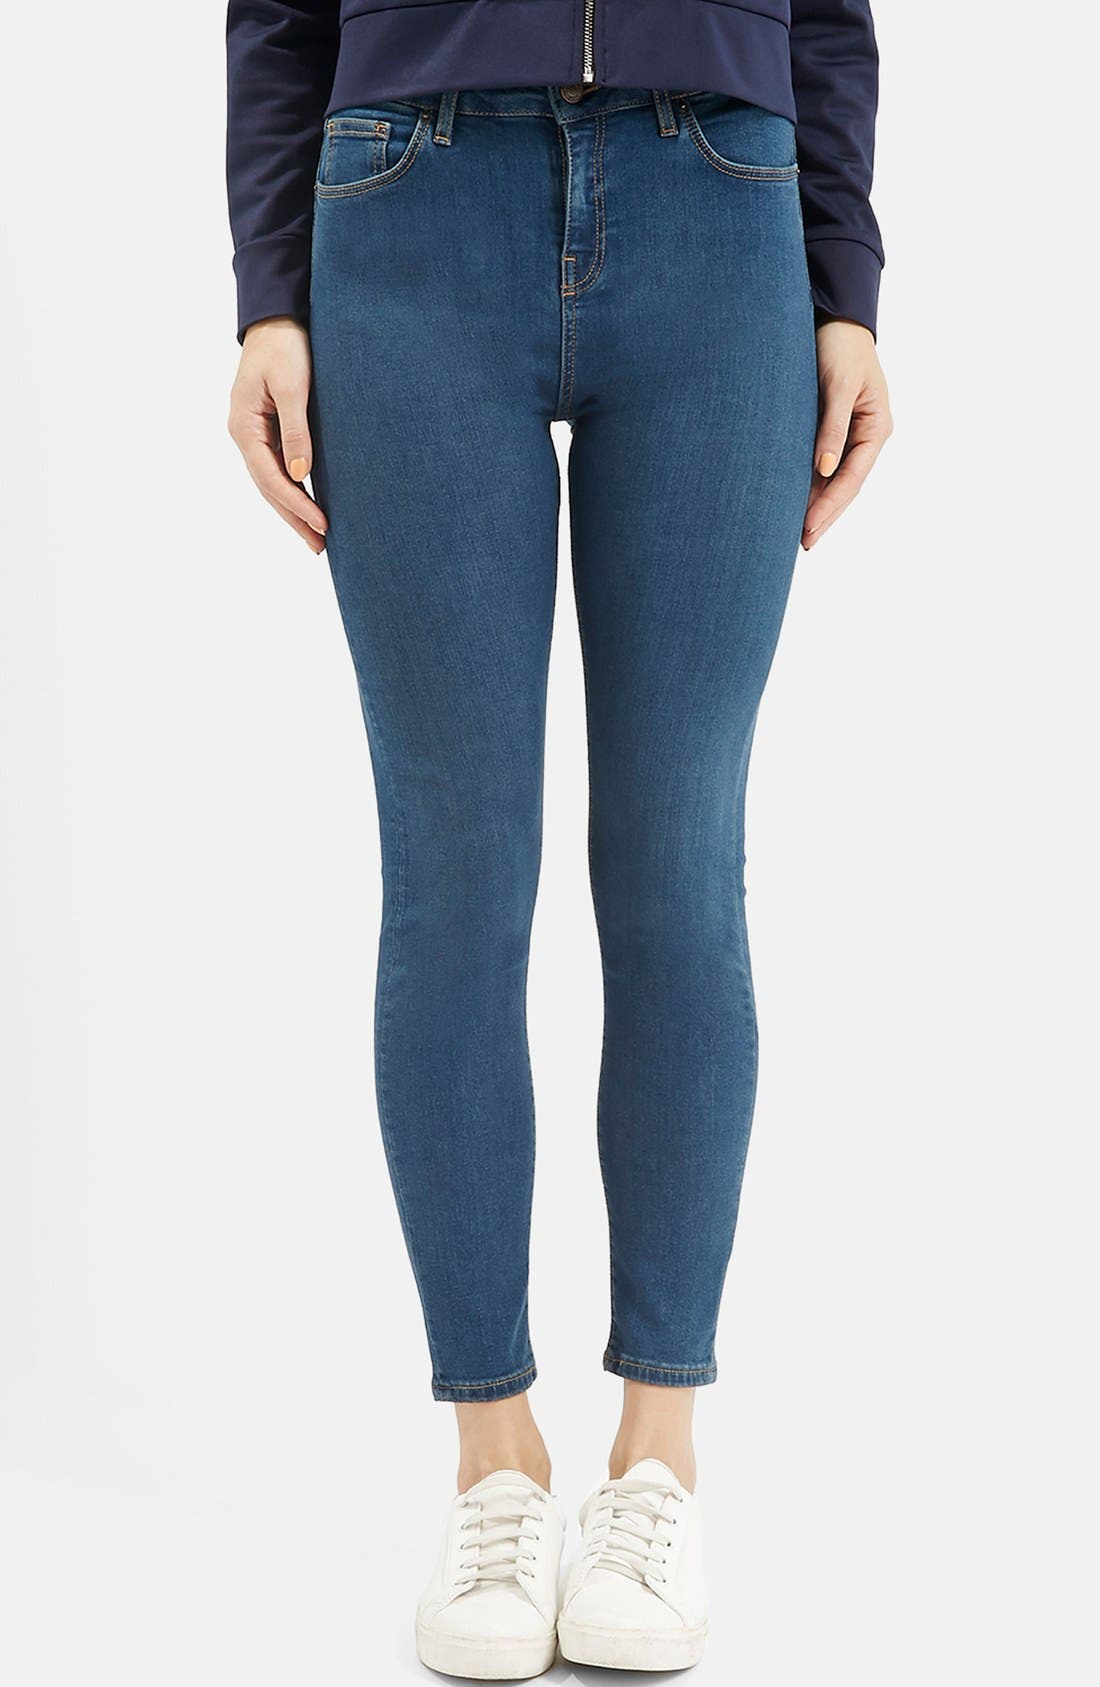 Alternate Image 1 Selected - Topshop Moto 'Jamie' High Rise Skinny Jeans (Blue)